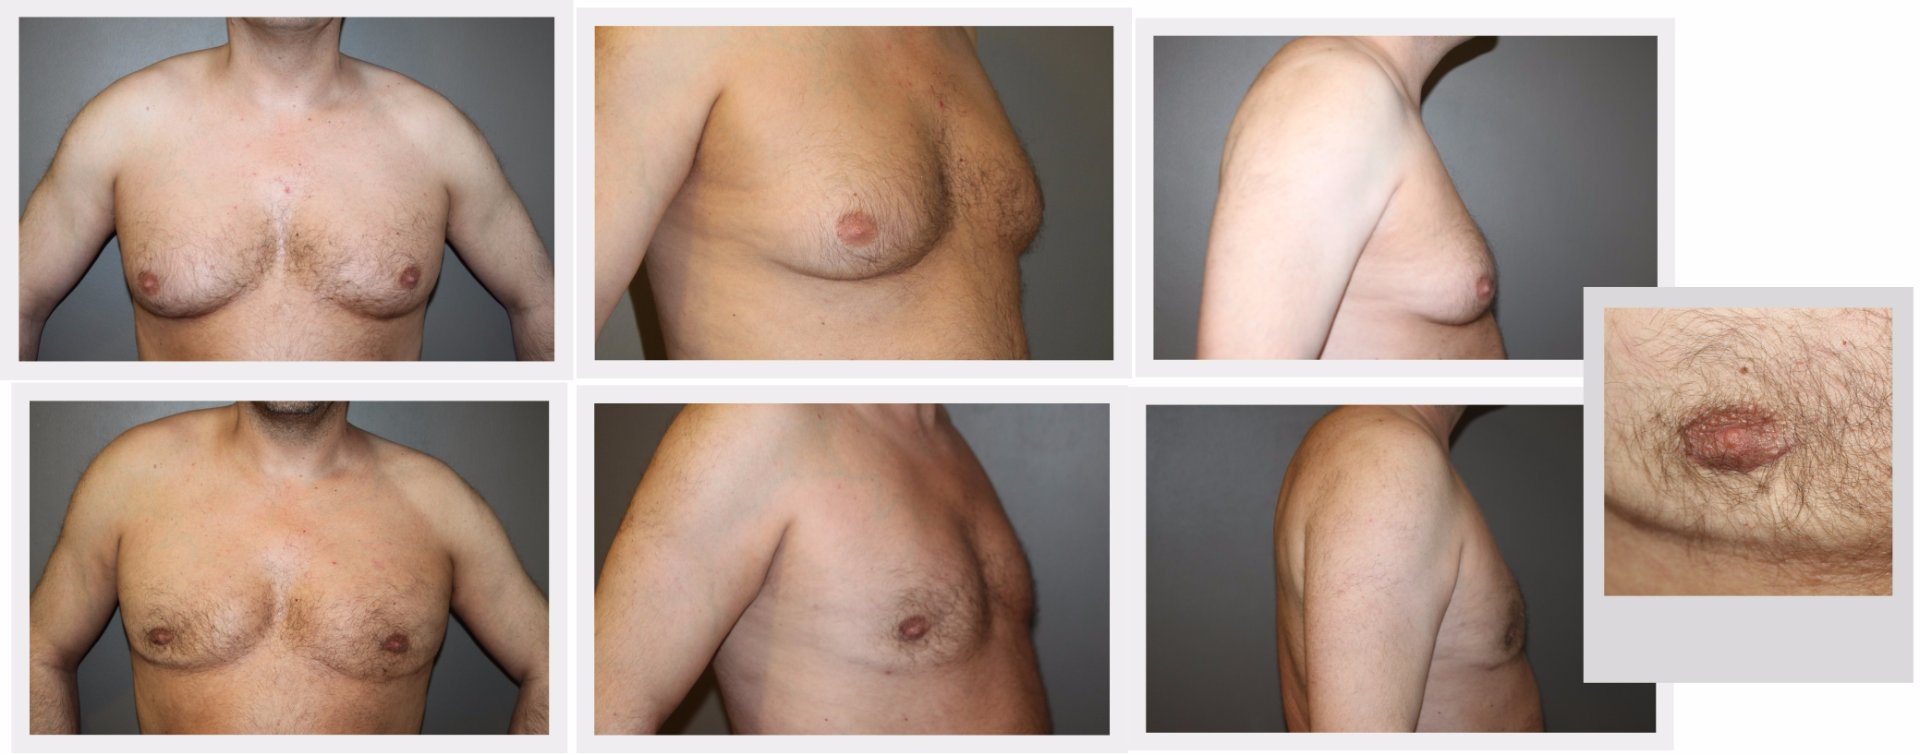 GYNAECOMASTIA (male breast reduction)